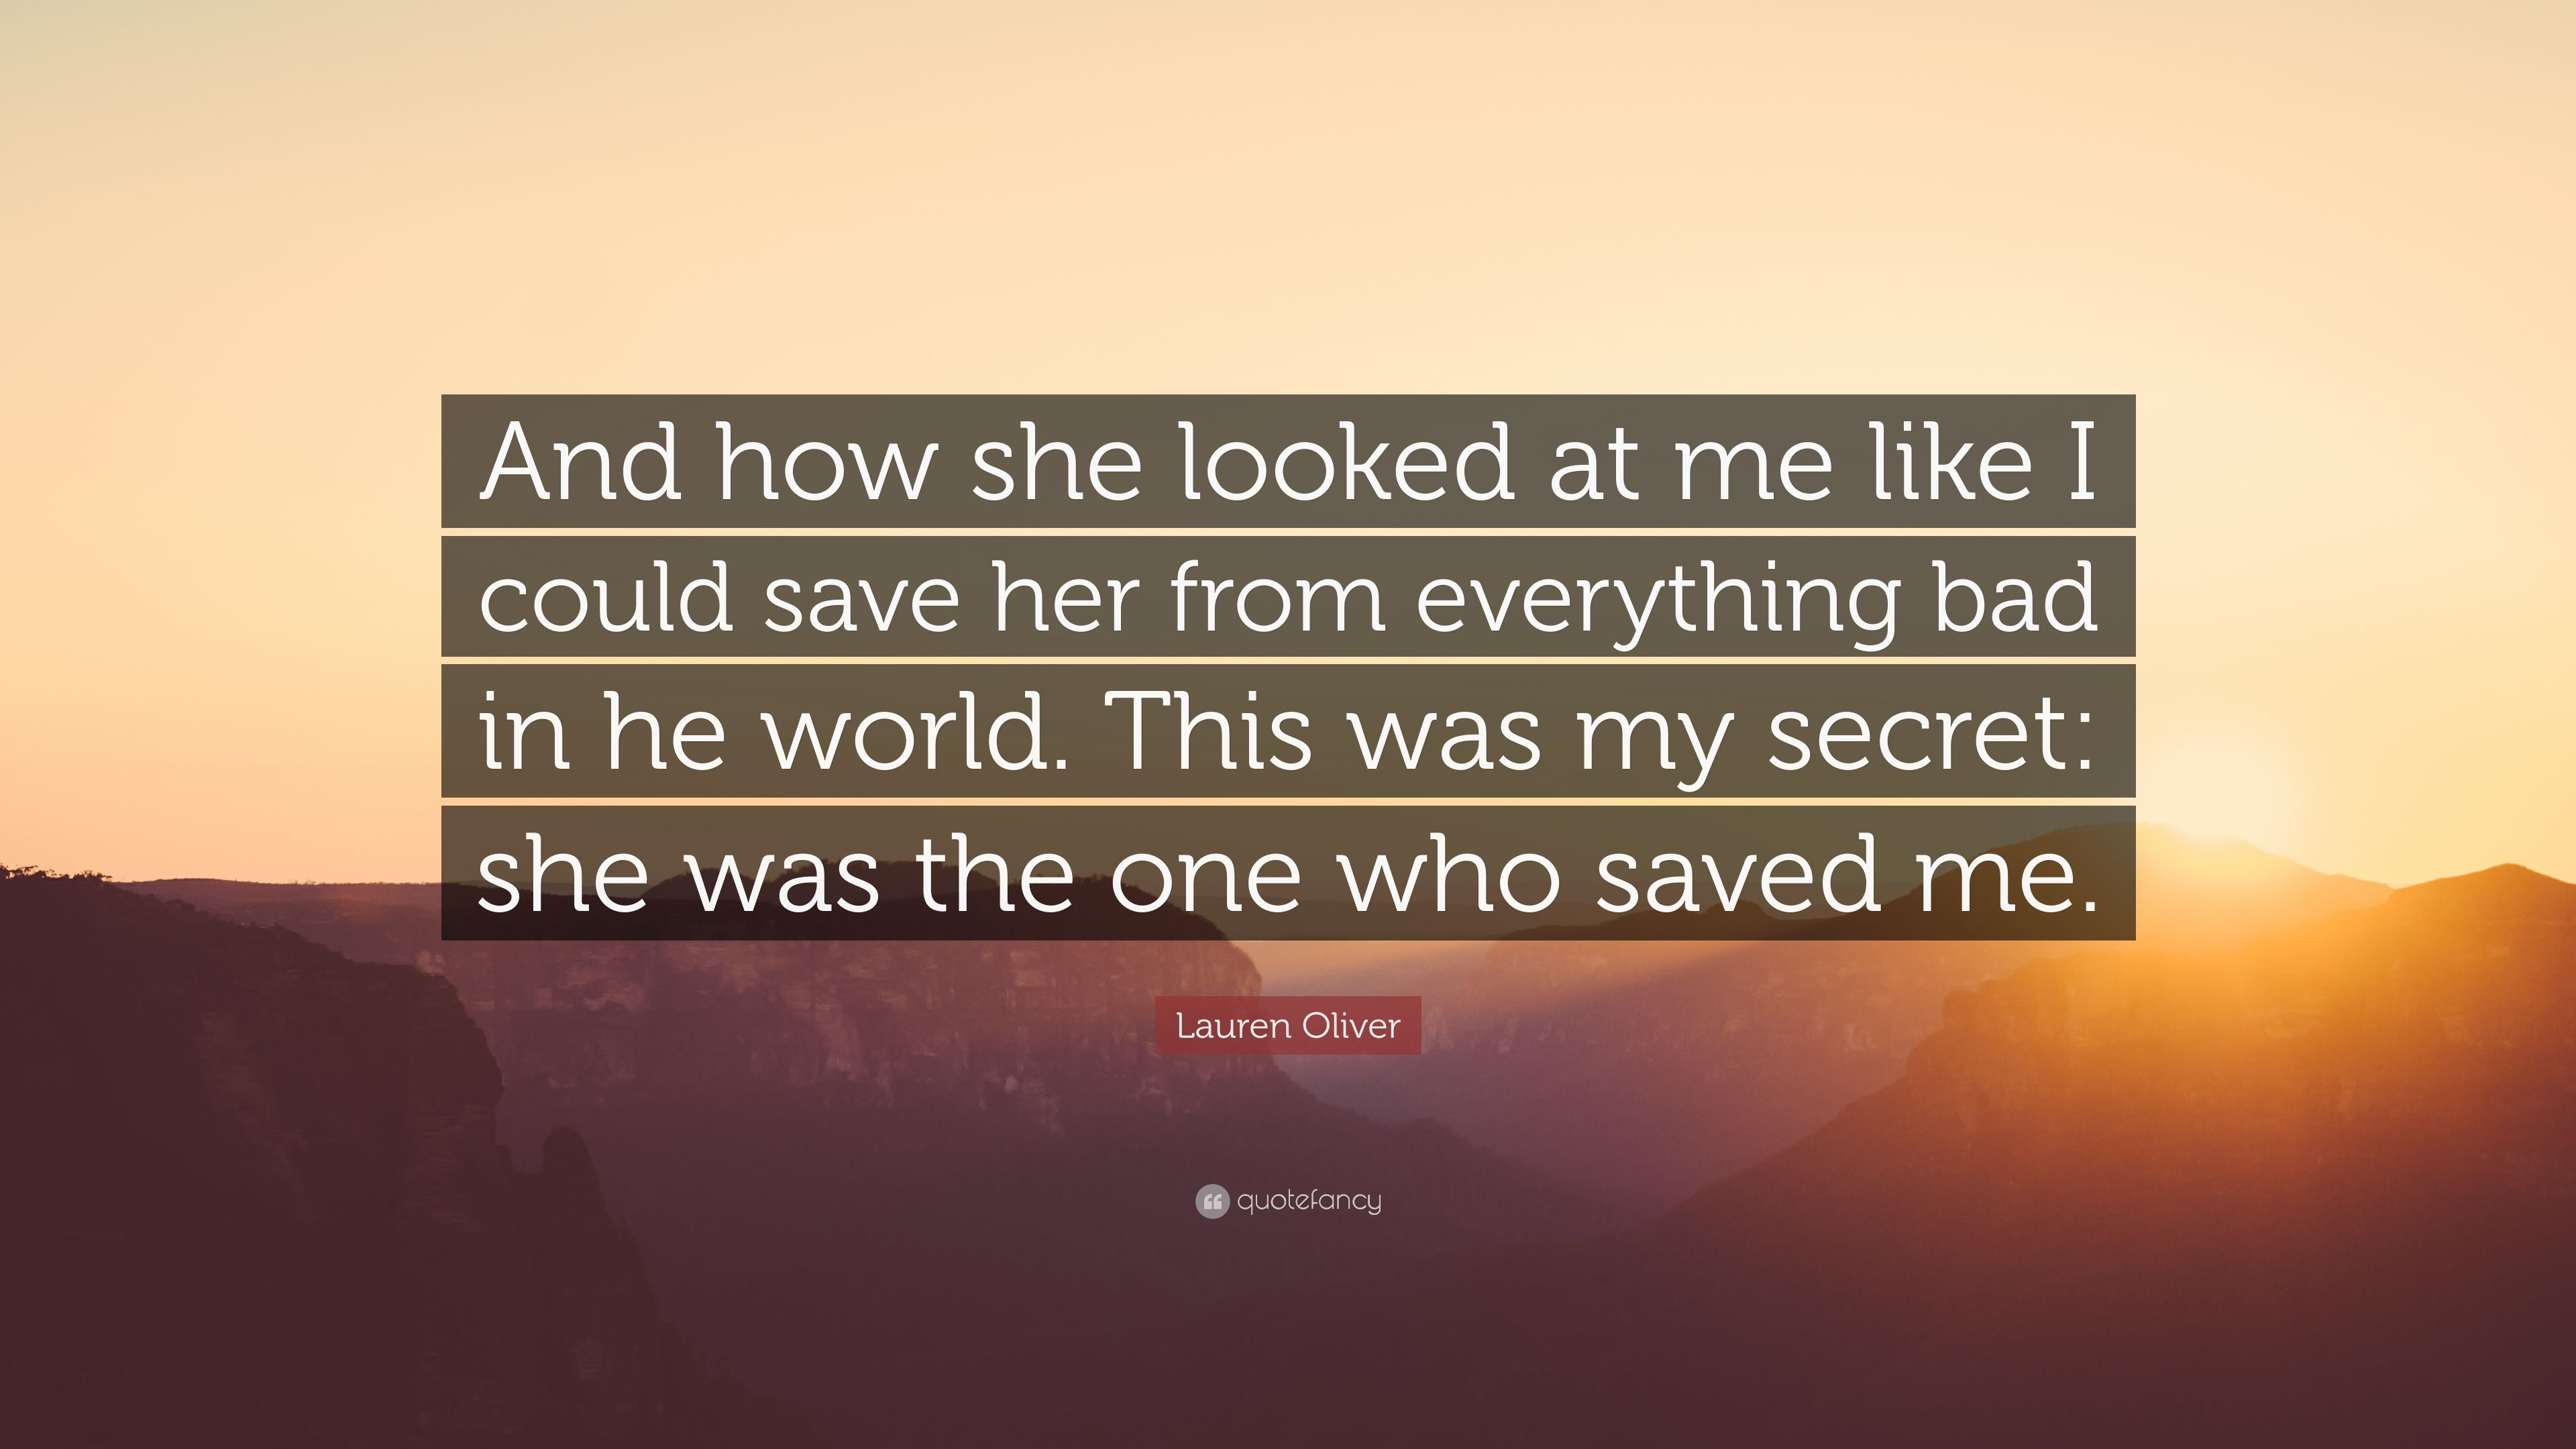 Lauren Oliver Quote And How She Looked At Me Like I Could Save Her